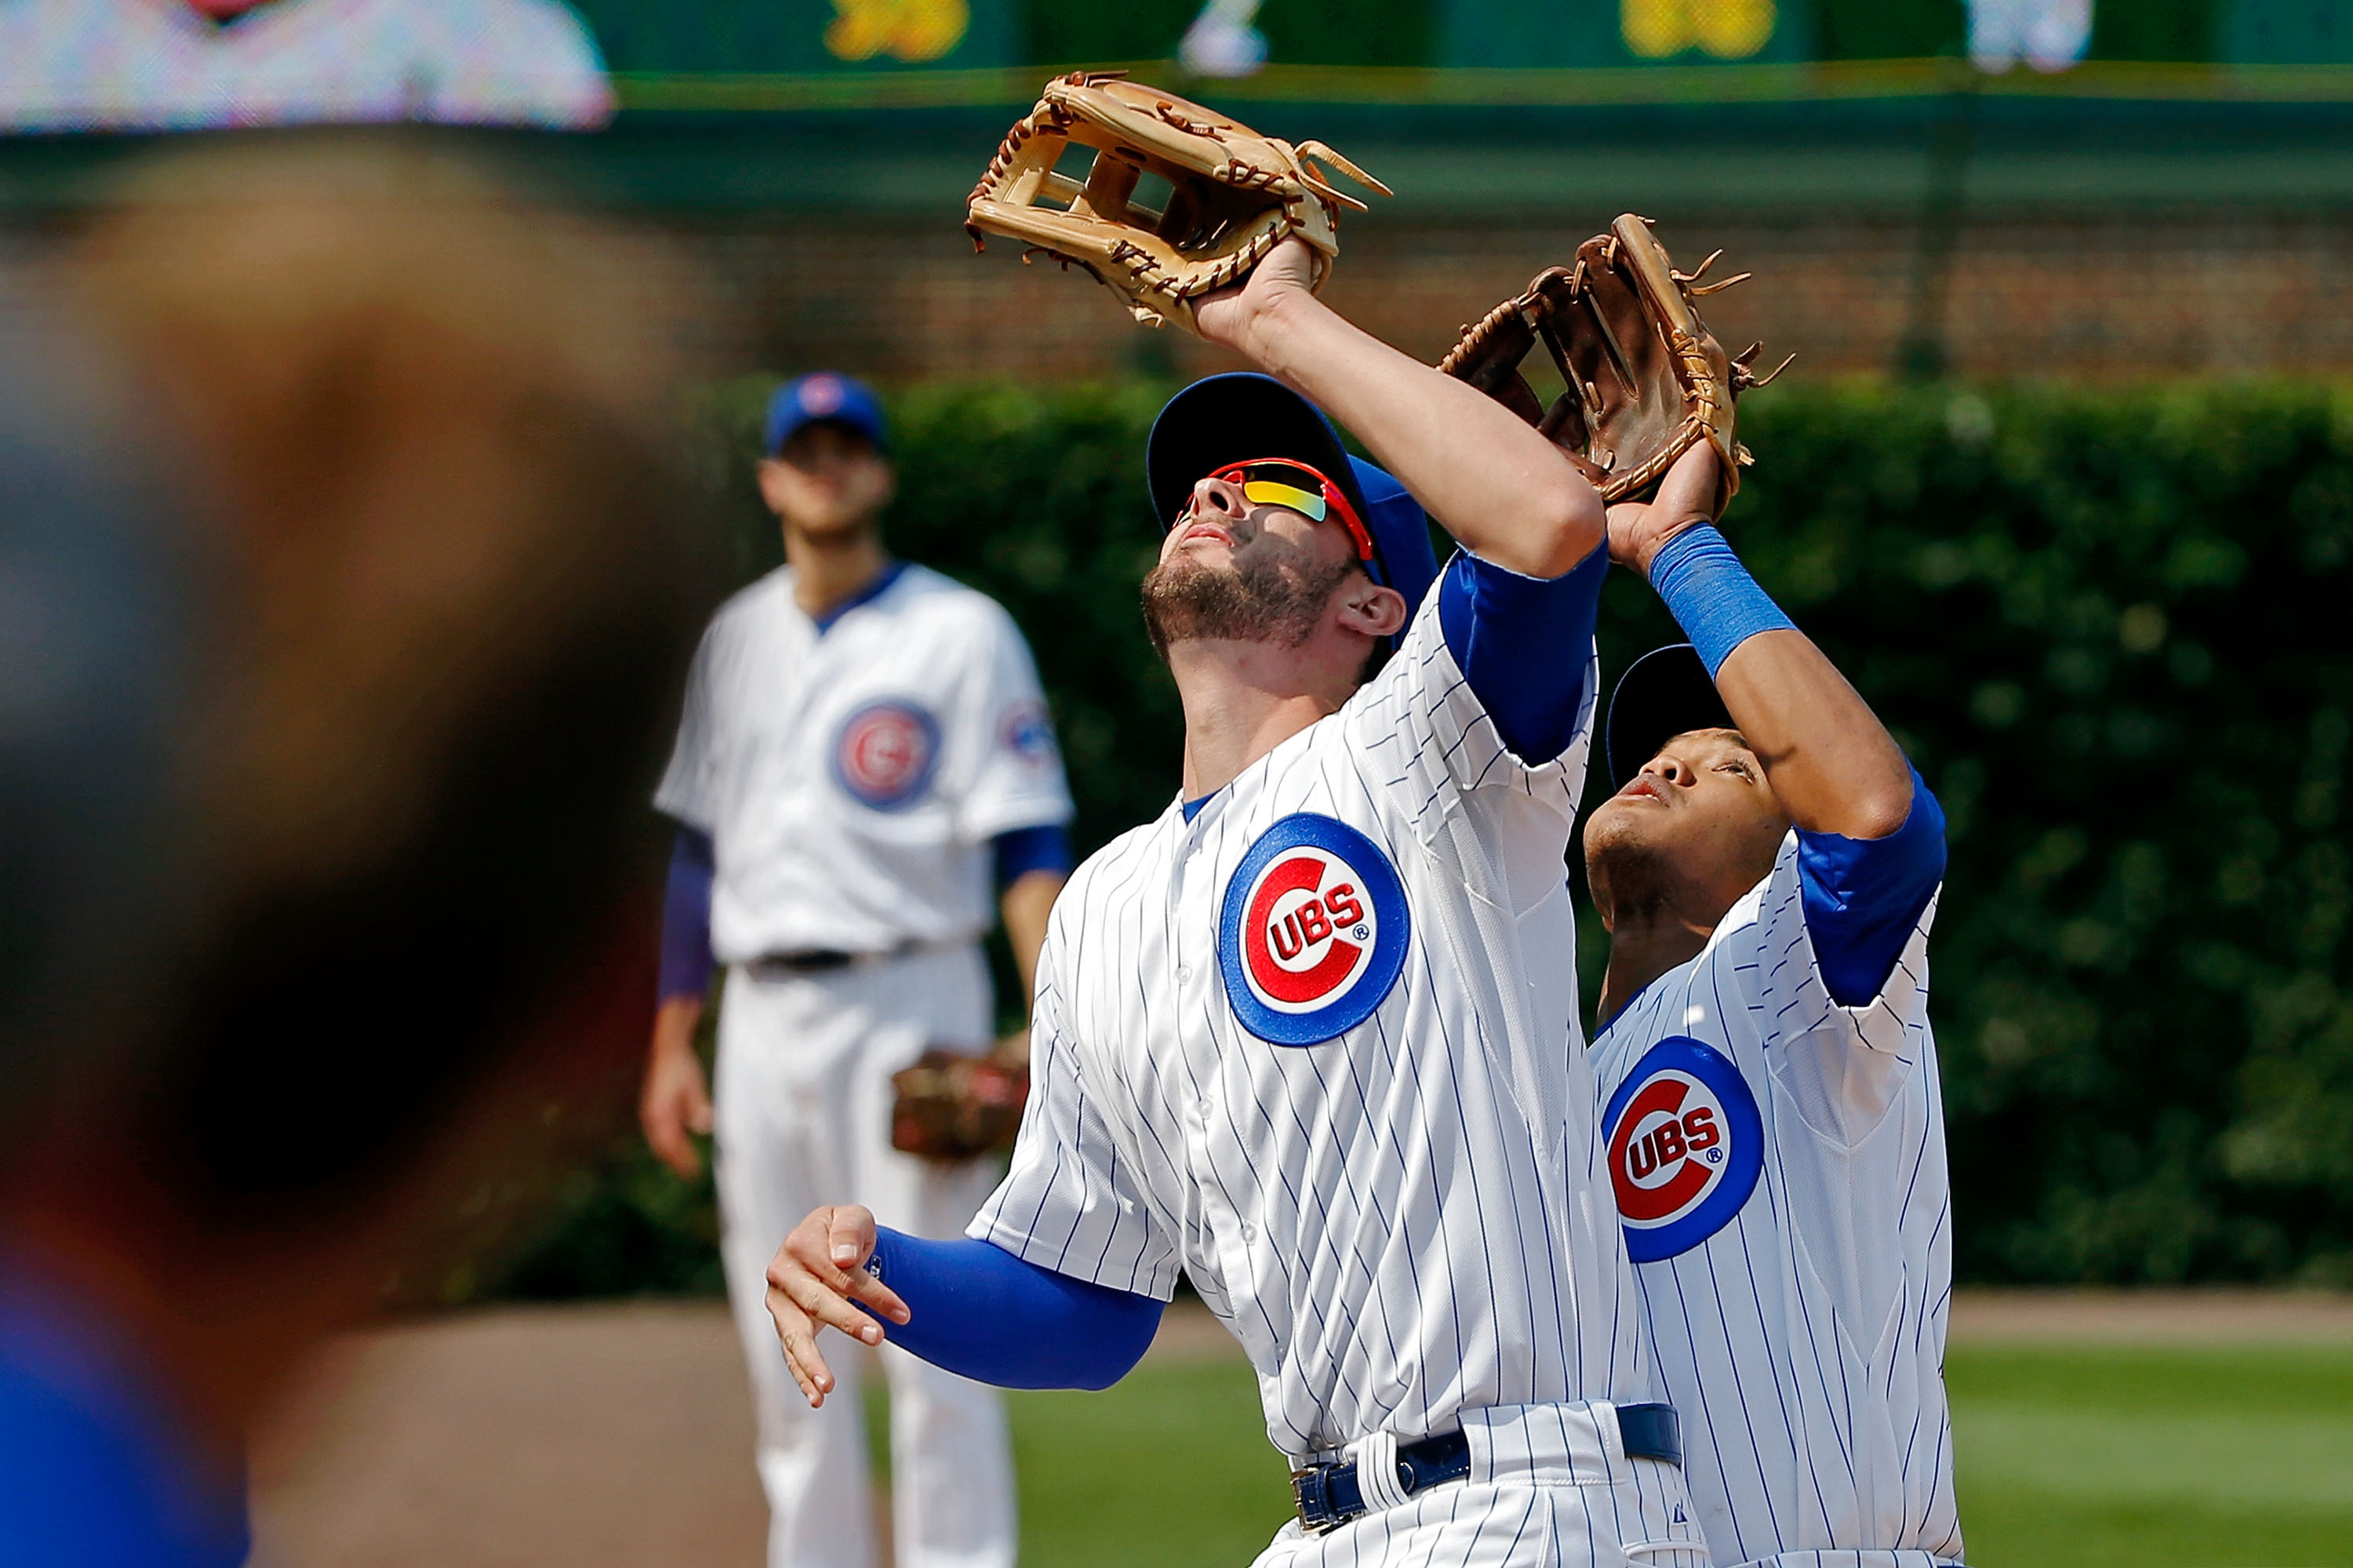 Kris Bryant and Addison Russell go for the ball